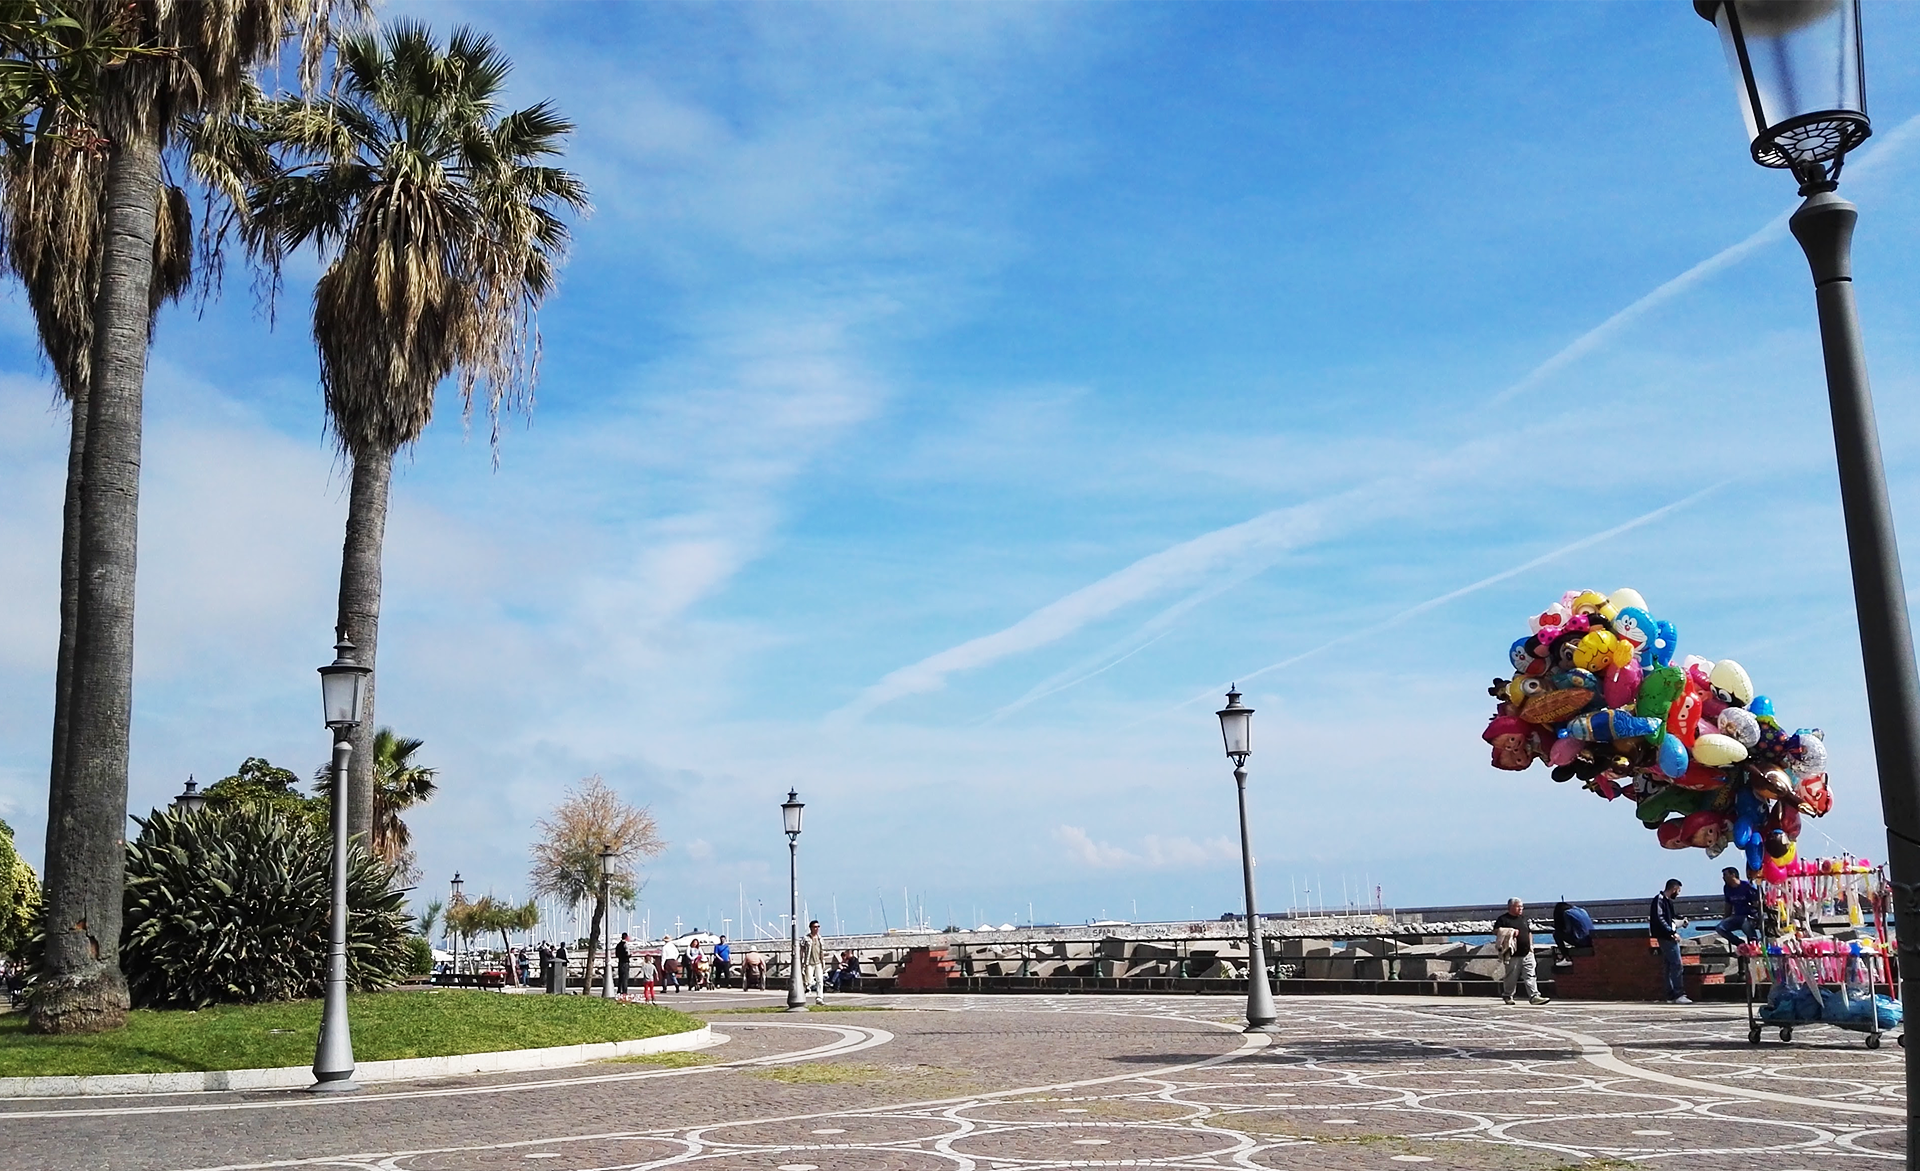 Salerno Lungomare Sea side promenade